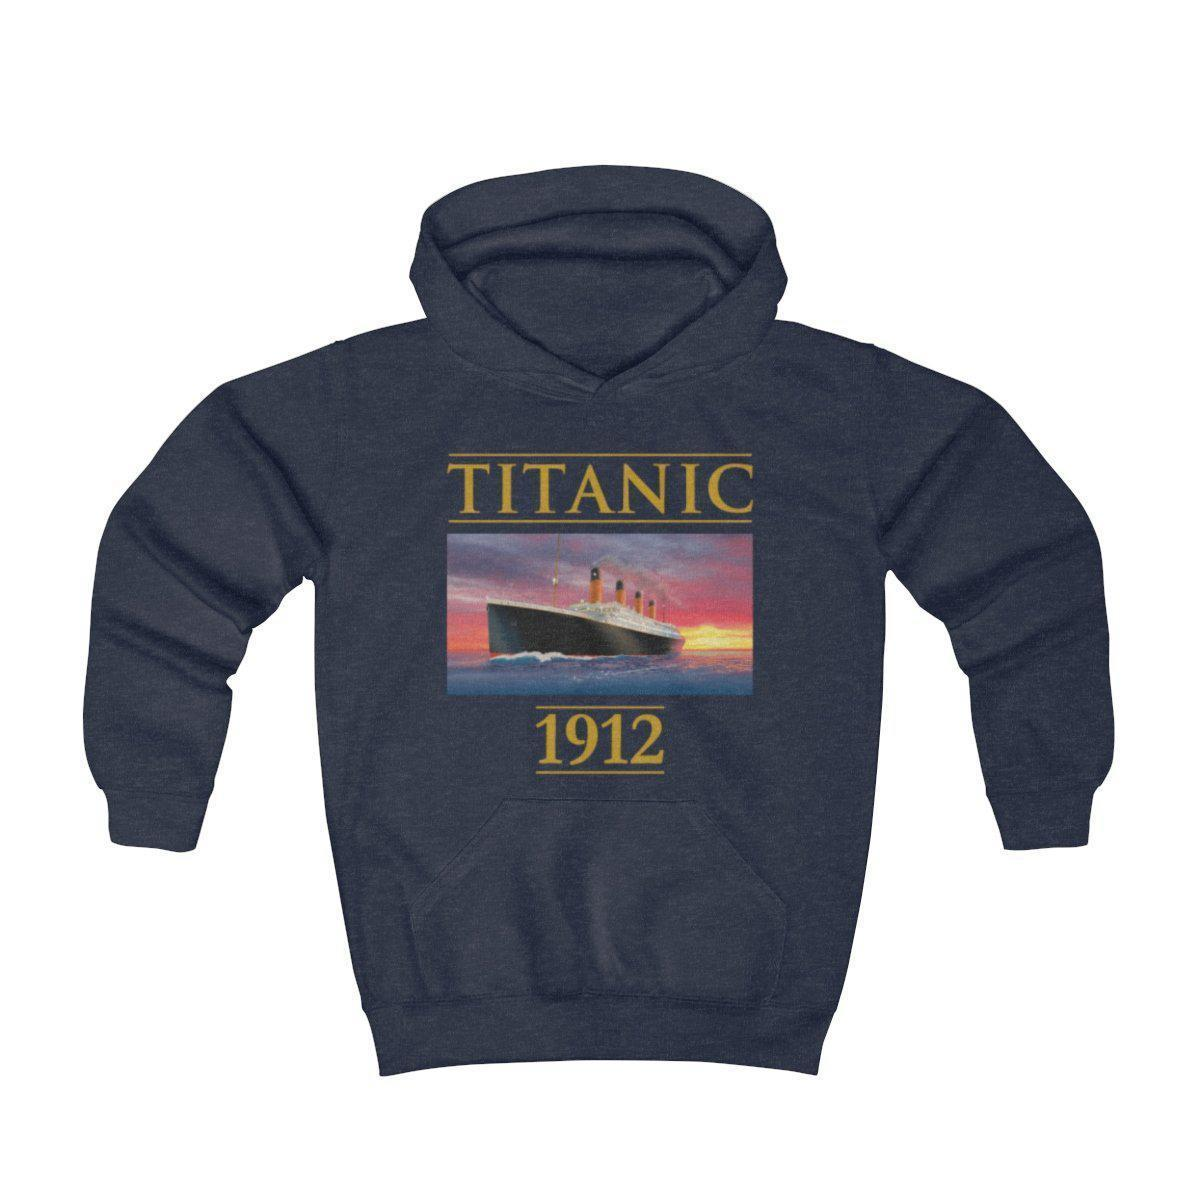 Titanic 1912 rare vintage pullover, iceberg and old cruise liner hoodie, gift for Titanic fan-Hoodie-Printify-titanic-hoodie-sweatshirt-kids-Titanic shop